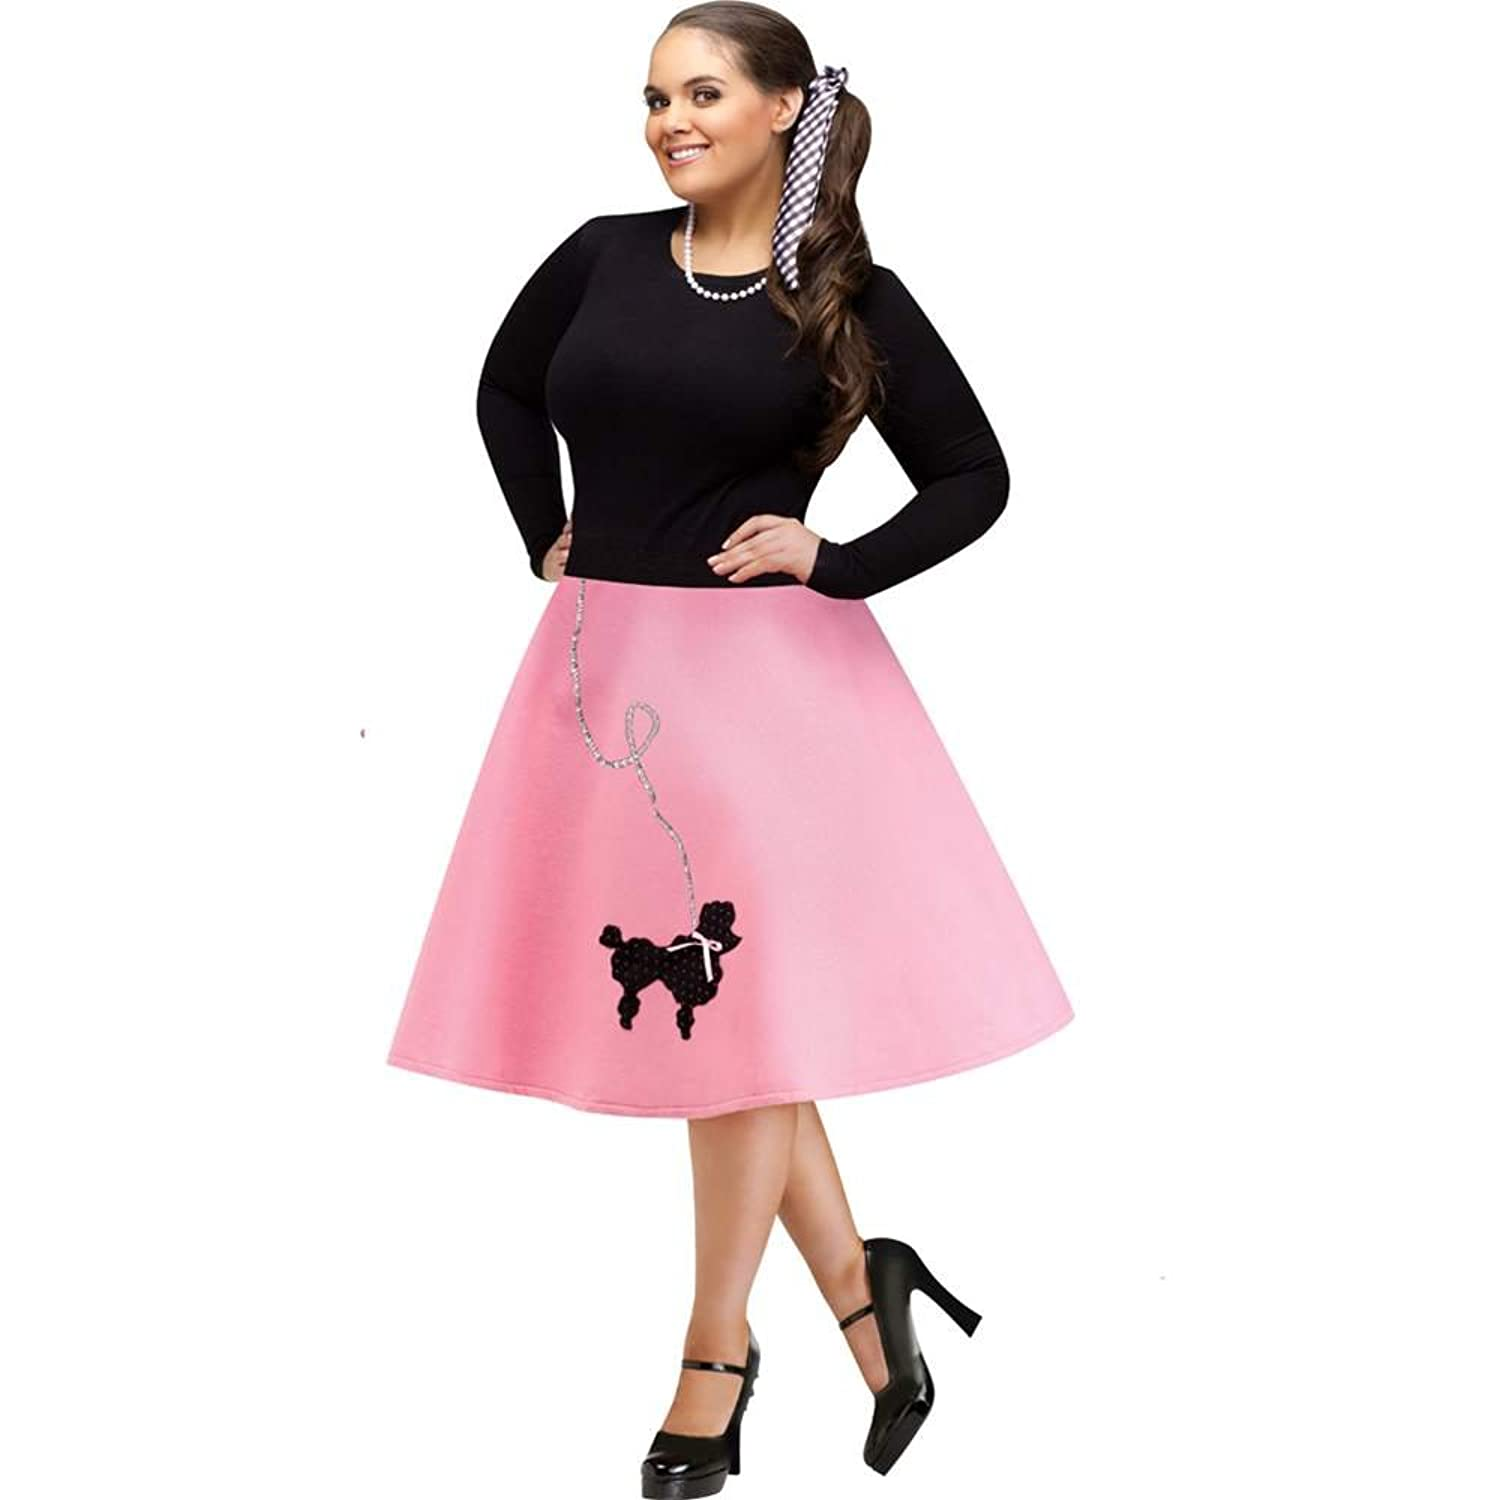 50s Costumes | 50s Halloween Costumes FunWorld Plus-Size Poodle Skirt Costume $18.99 AT vintagedancer.com